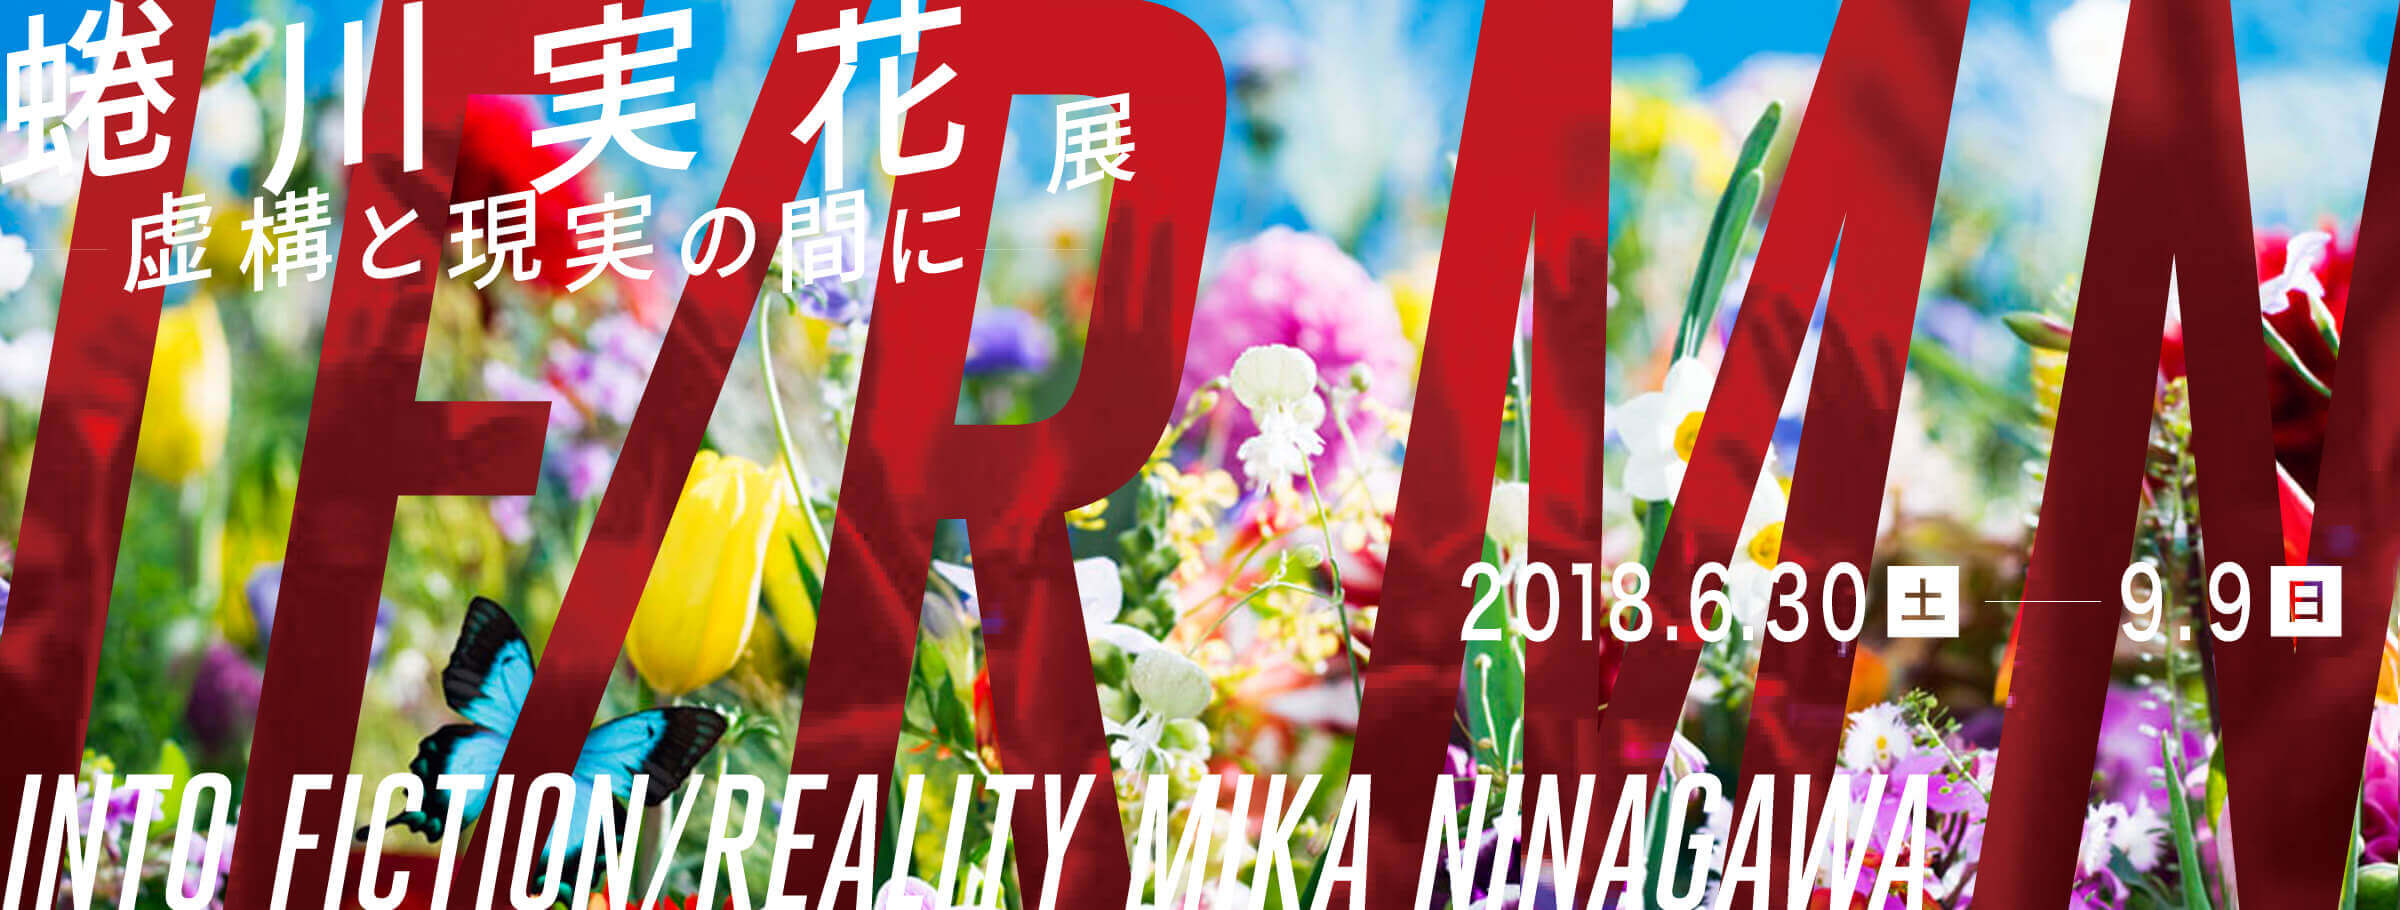 MIKA NINAGAWA INTO FICTION/REALITY